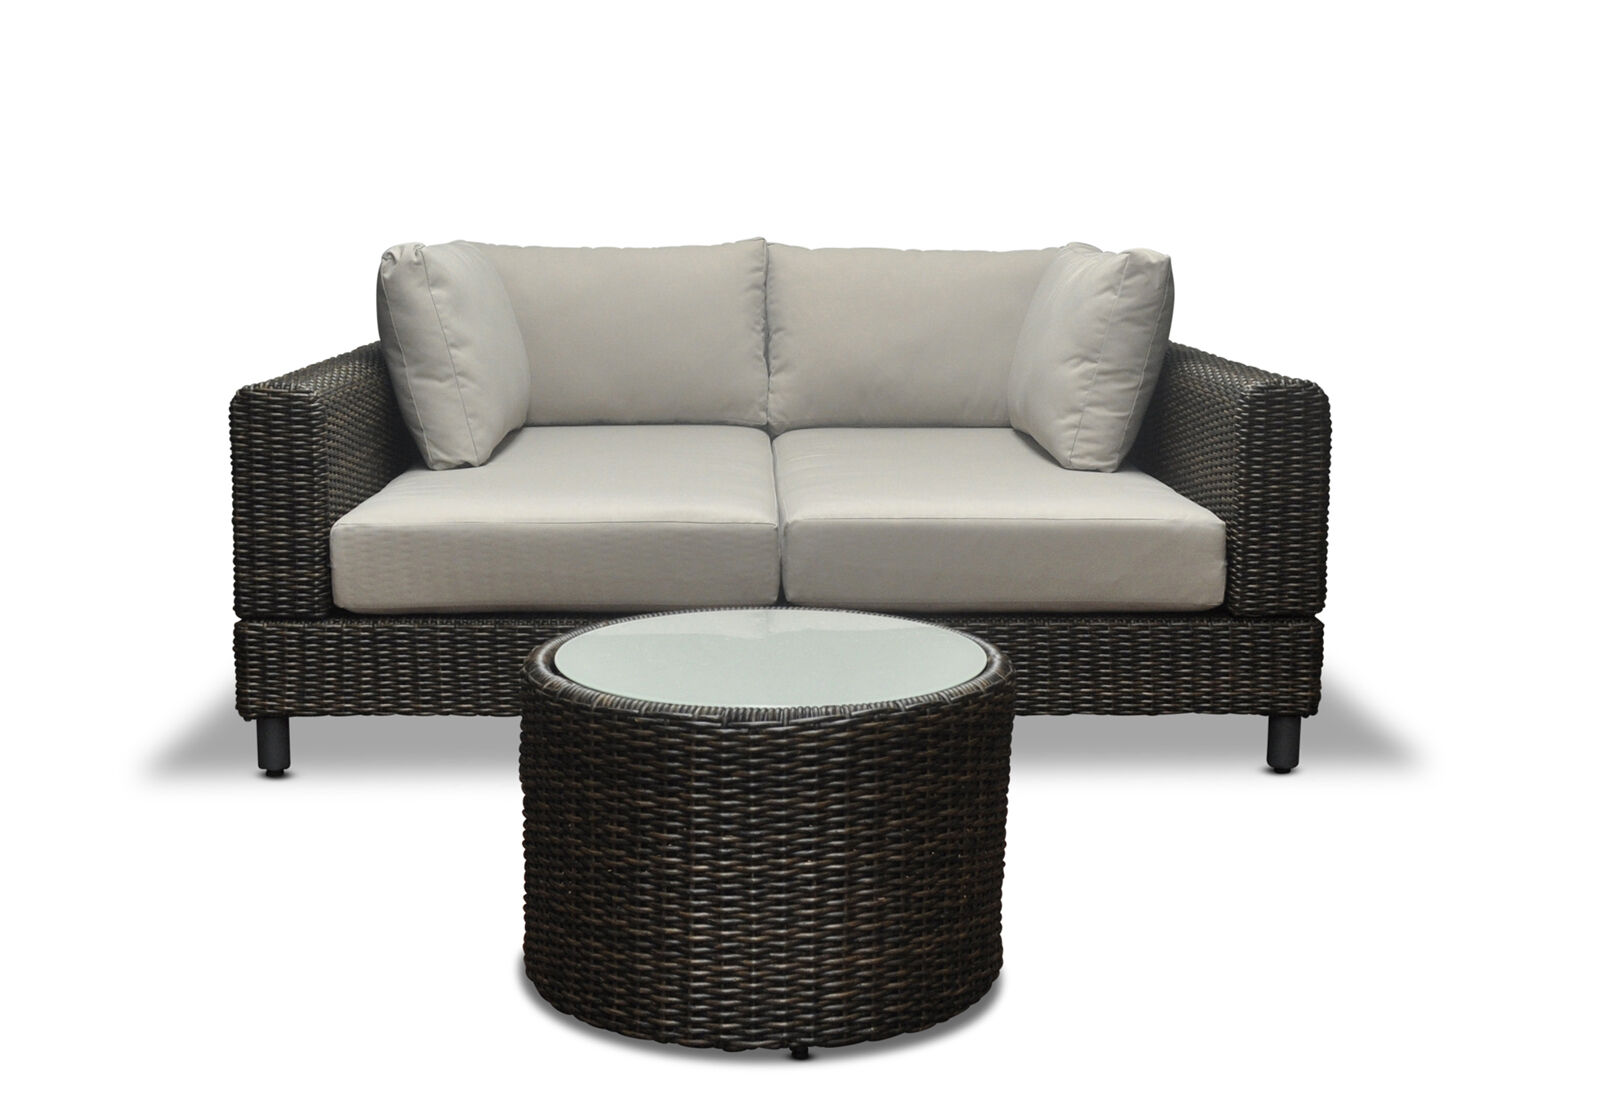 Modular wicker outdoor corner sofa chaise sun lounge for Chaise daybed sofa